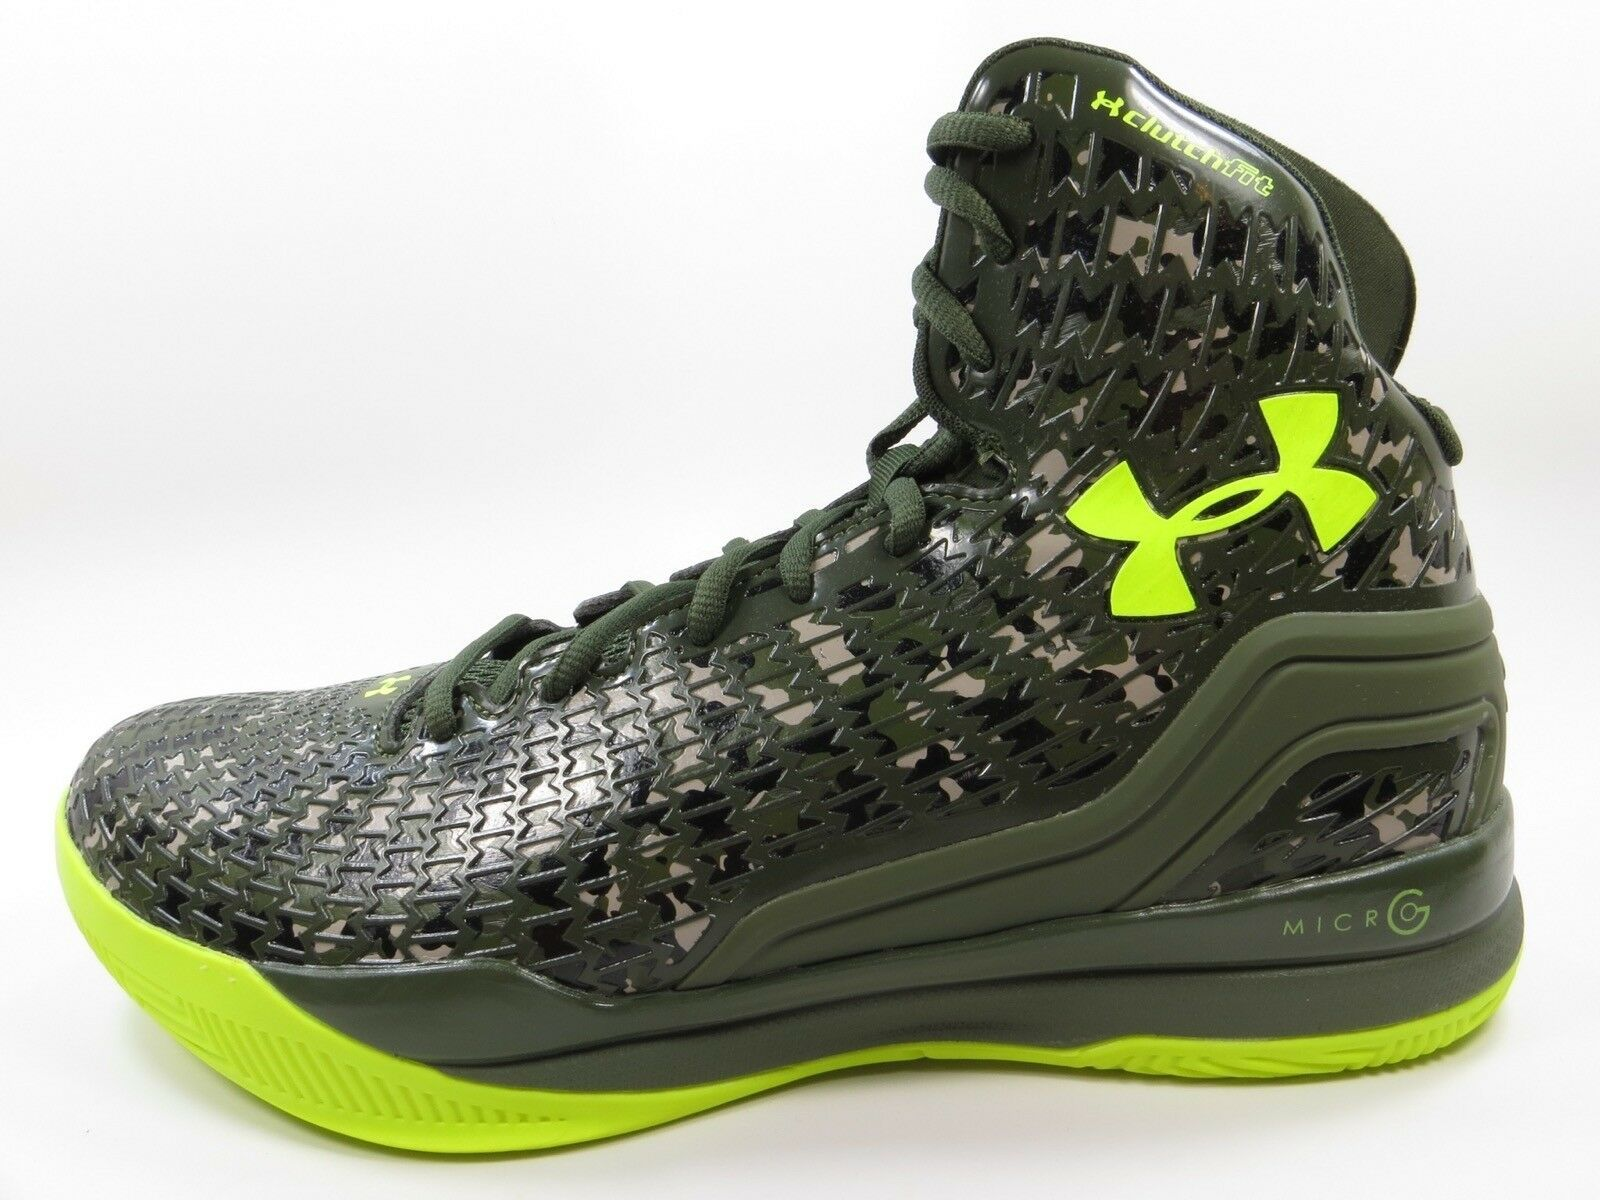 93058c87742c UA Under Armour Clutchfit Drive Wounded Warrior Project Stephen Curry SIZE  13 - Curry 4 Shoes